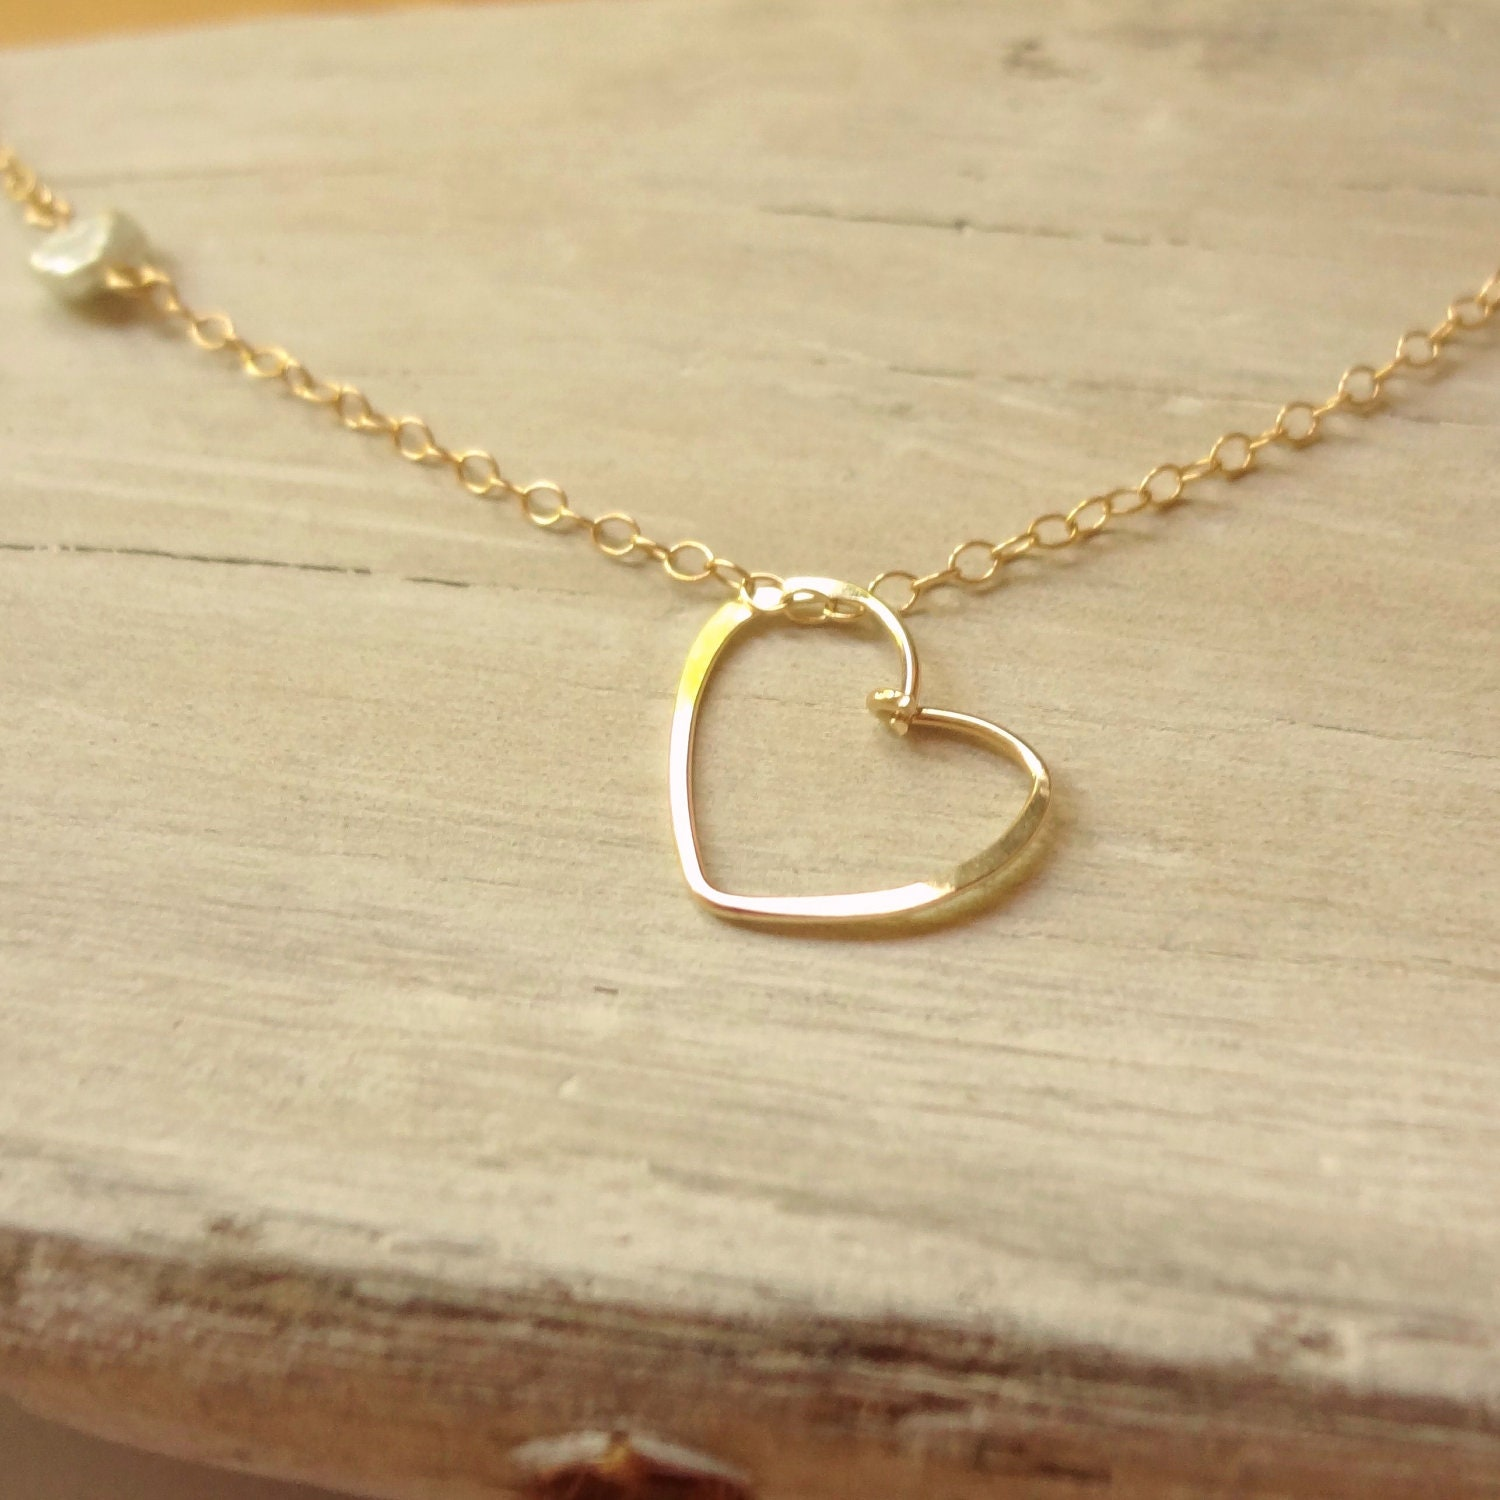 gold heart necklace handmade floating heart necklace with. Black Bedroom Furniture Sets. Home Design Ideas